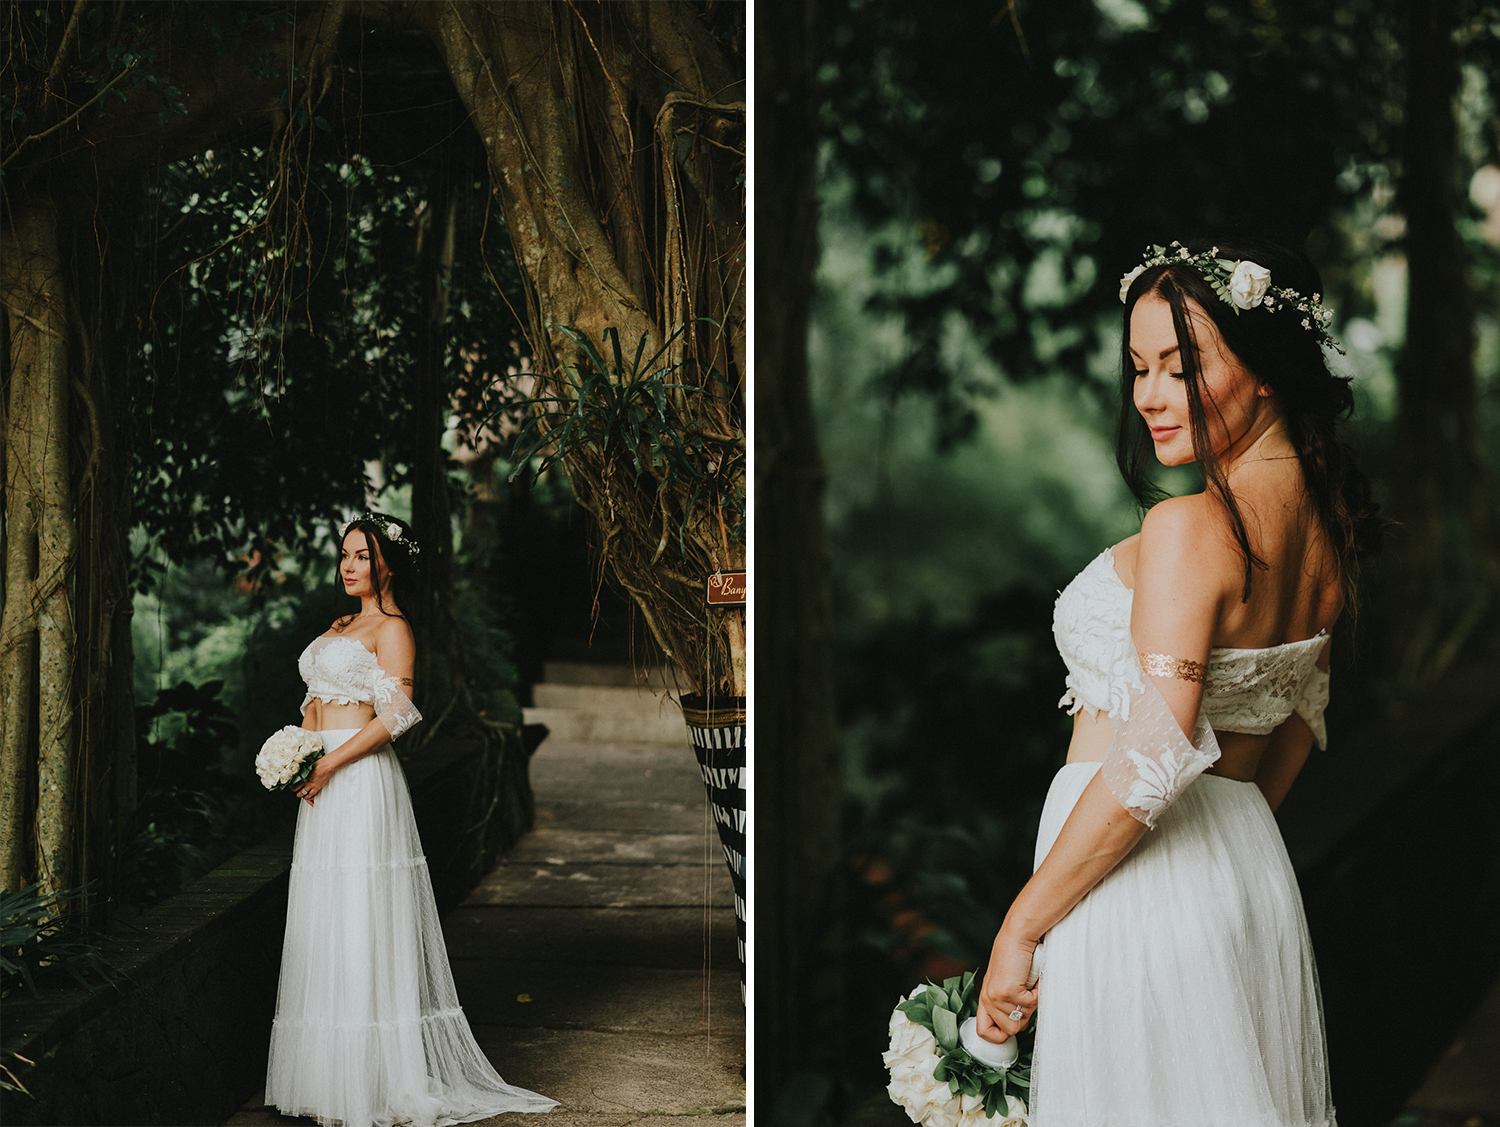 bali wedding - elopement - ubud wedding - diktatphotography - olga + Jason - 64